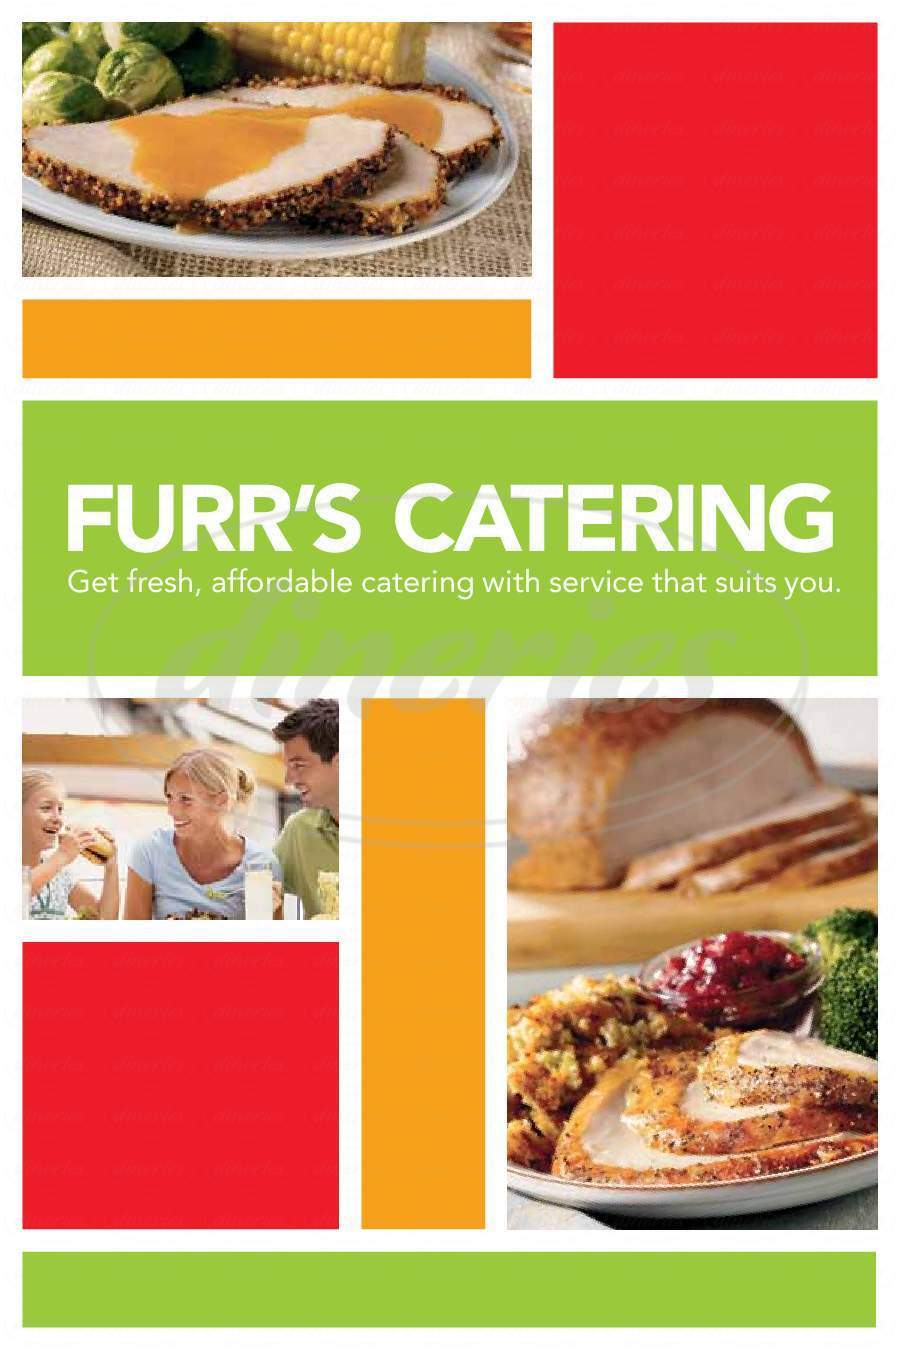 menu for Furr's Family Dining